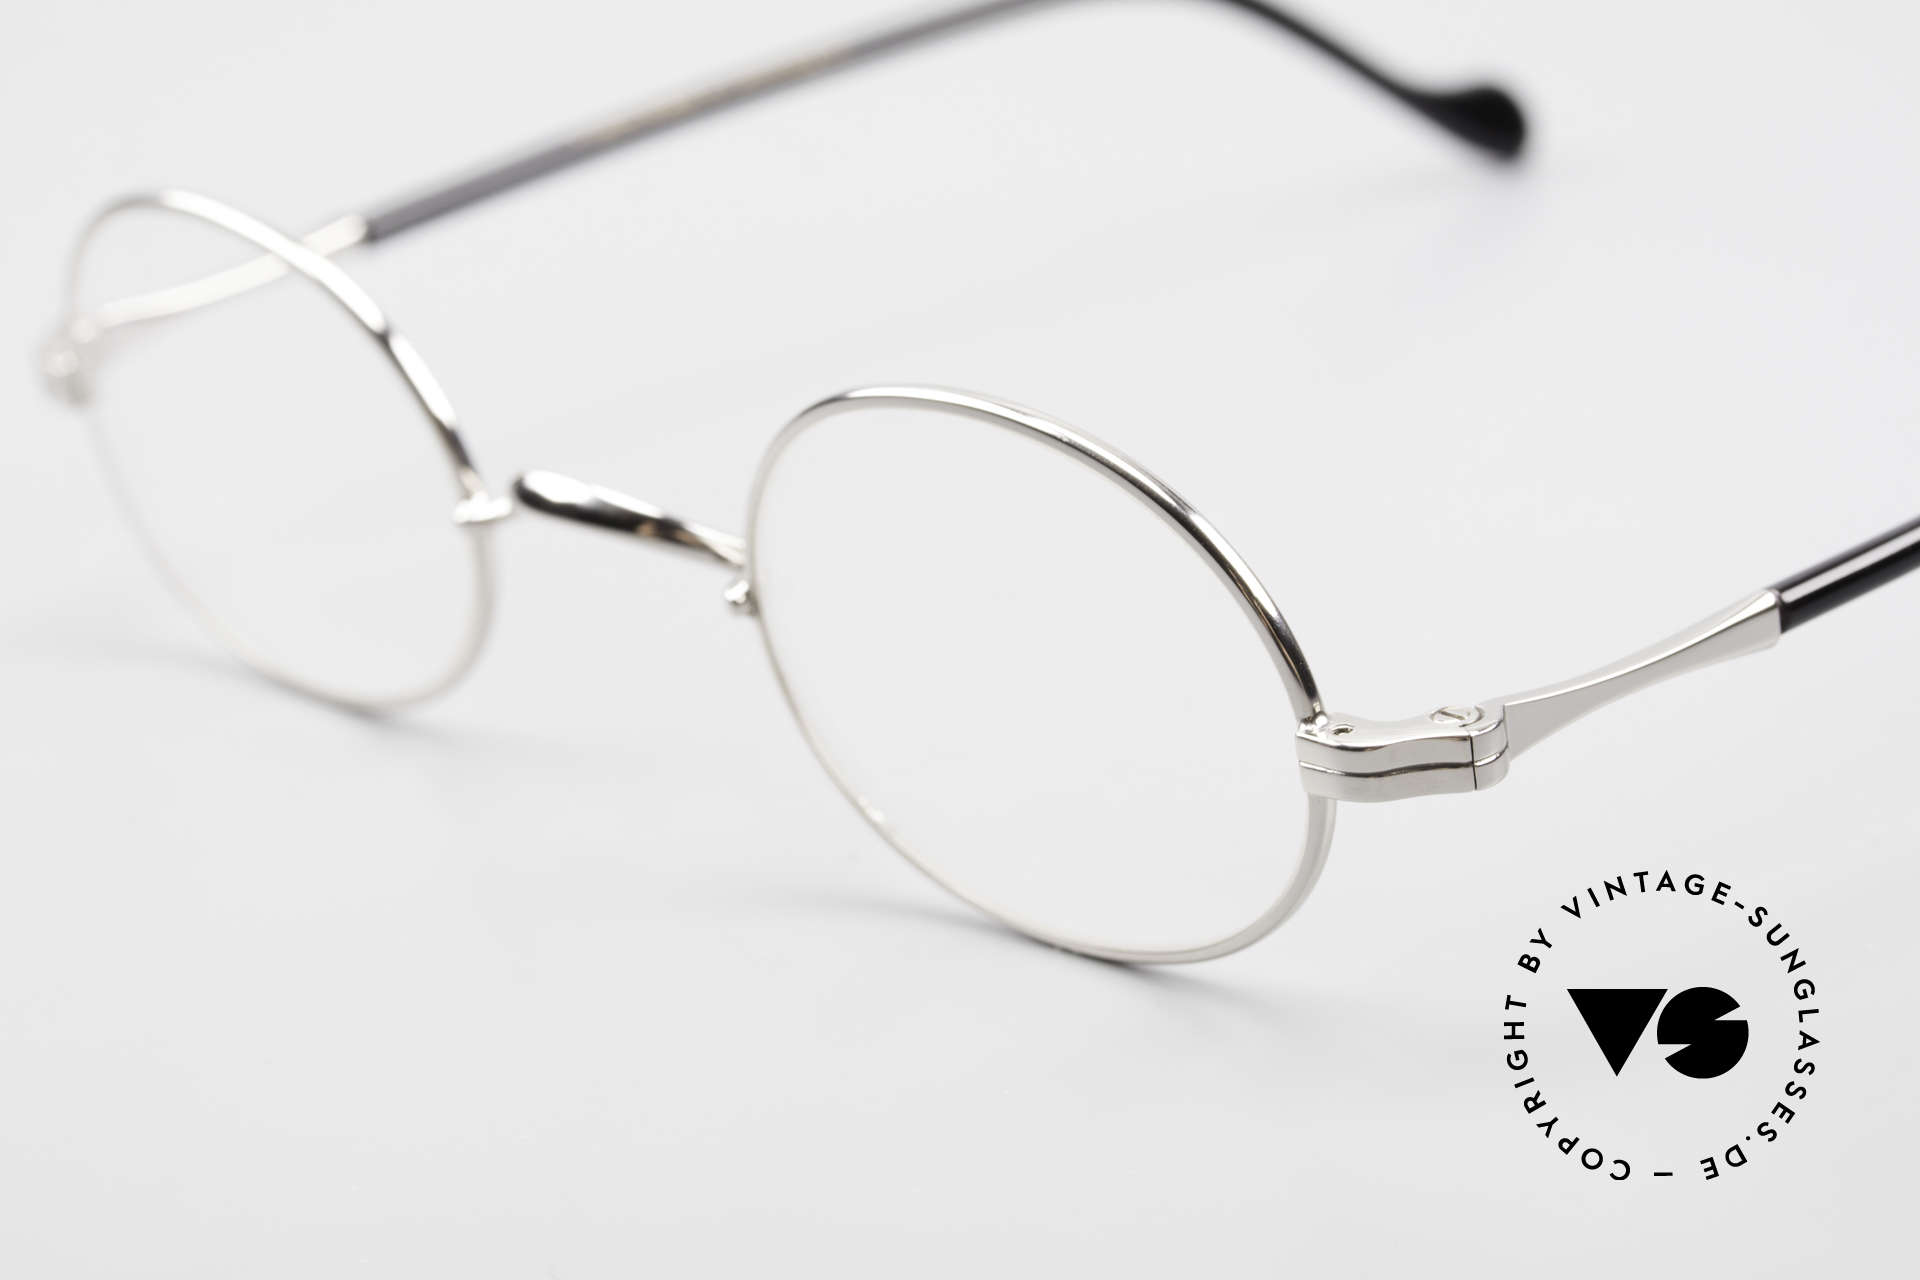 Lunor II A 10 Oval Vintage Frame Platinum, traditional German brand; quality handmade in Germany, Made for Men and Women